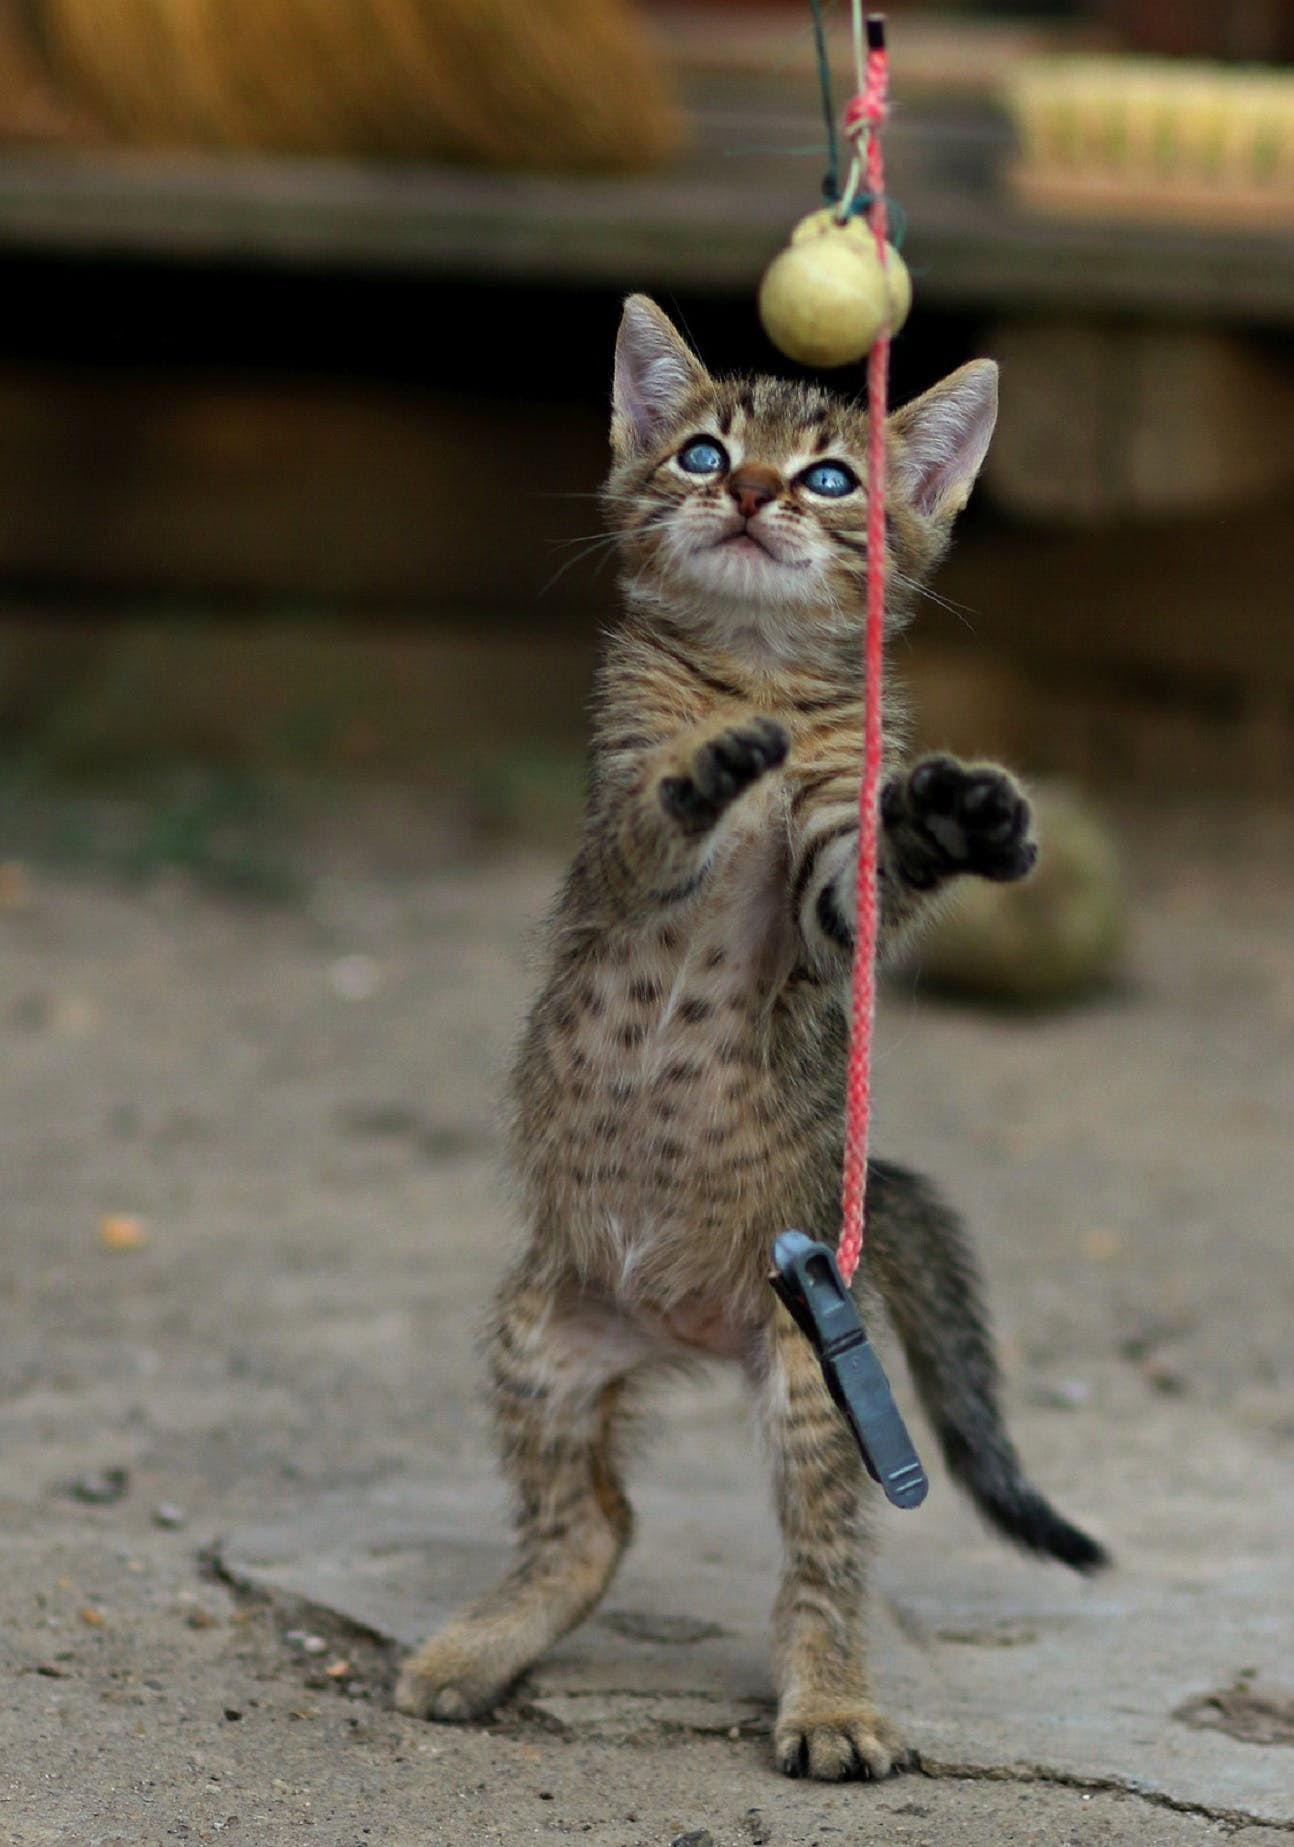 A cat up on its hind legs playing with a ball on a string.